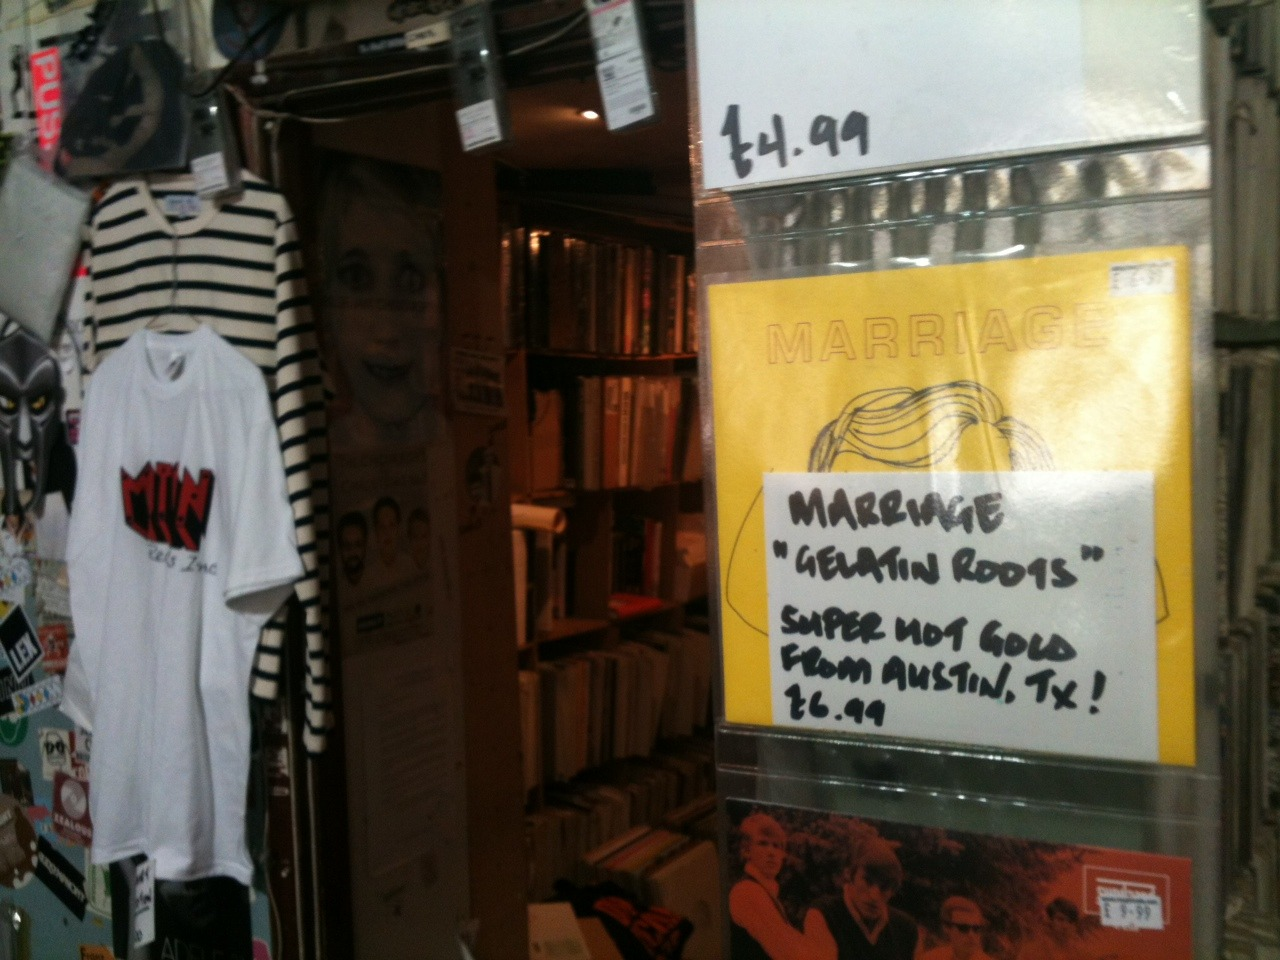 This is what our record looks like for sale at Rough Trade in London. Also if you read this blog and you have bought the 7 inch from us or somewhere else…send us a picture of you holding the record and we will email you a link to download mp3s. We also reserve the right to post any pics on the blog. Creativity is encouraged. m a r r i a g e a t x at g m a i l You can also order it from dischord. http://www.dischord.com/release/mrg01/gelatin-roots